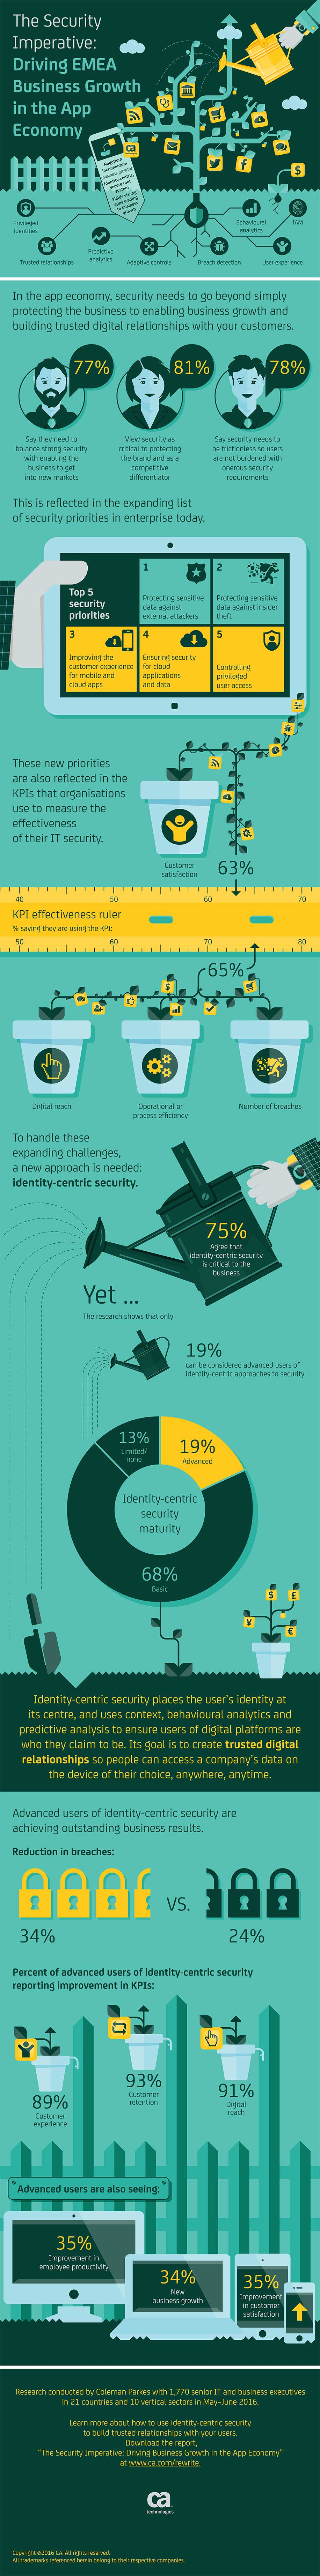 infographic, research, security